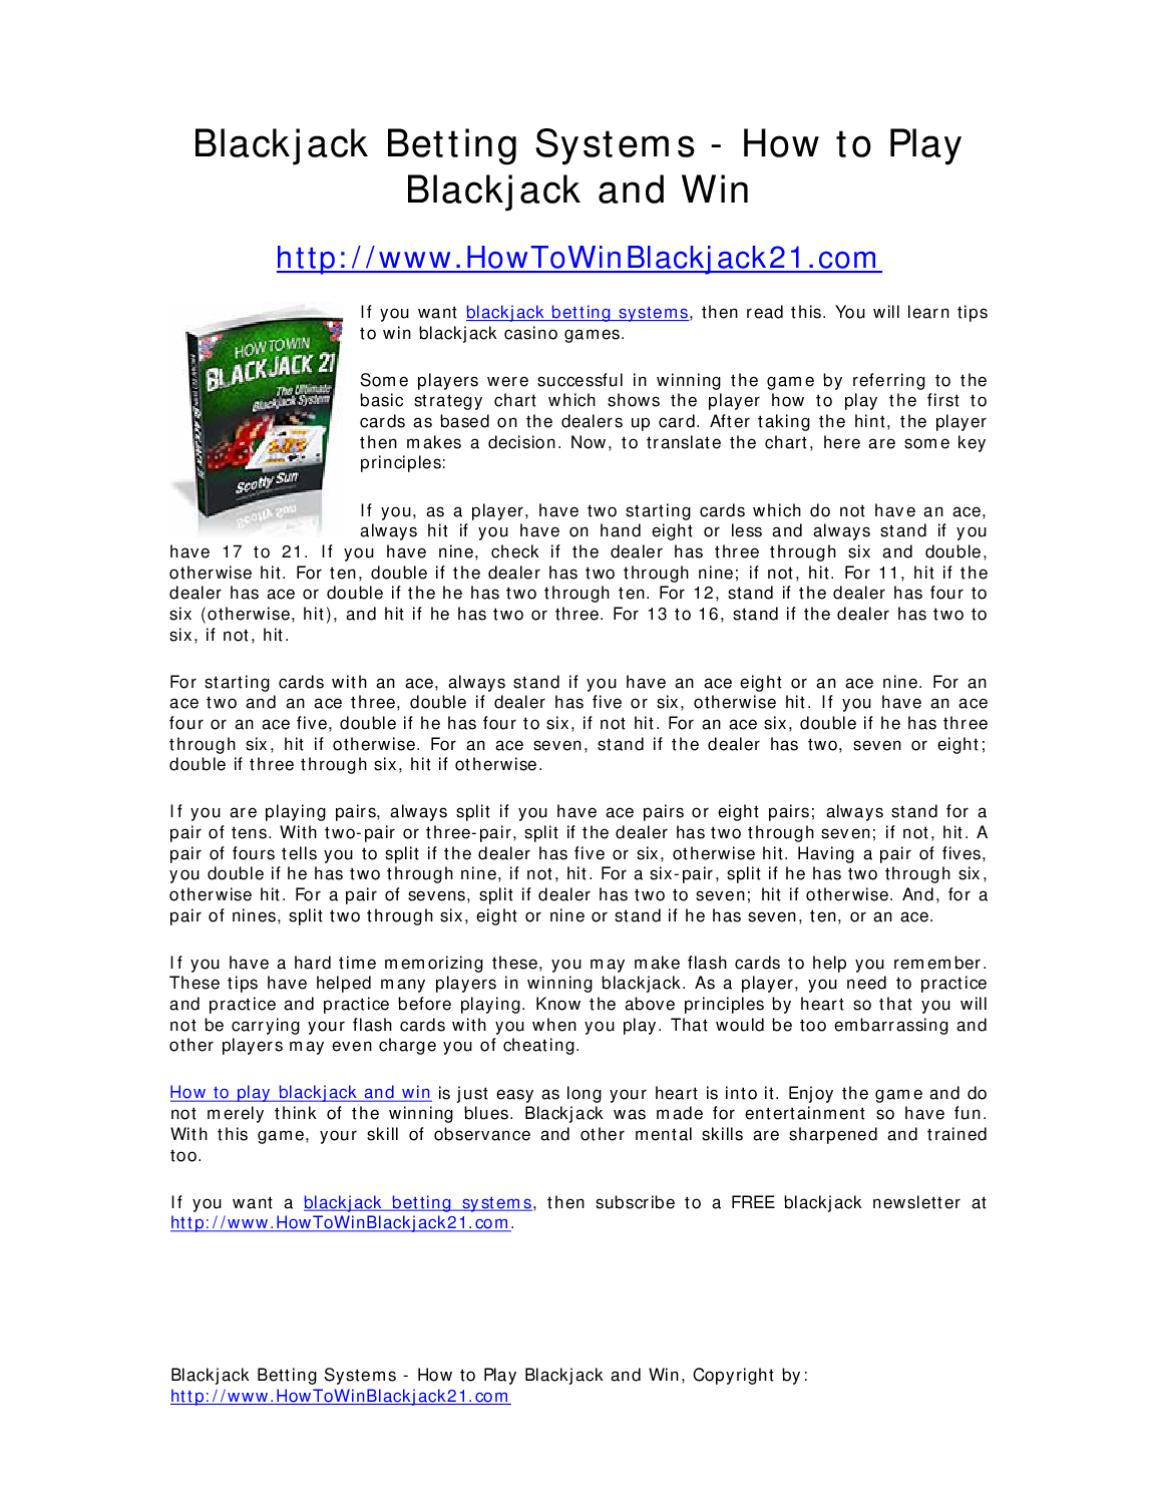 Rules for blackjack betting system no confirmations bitcoins